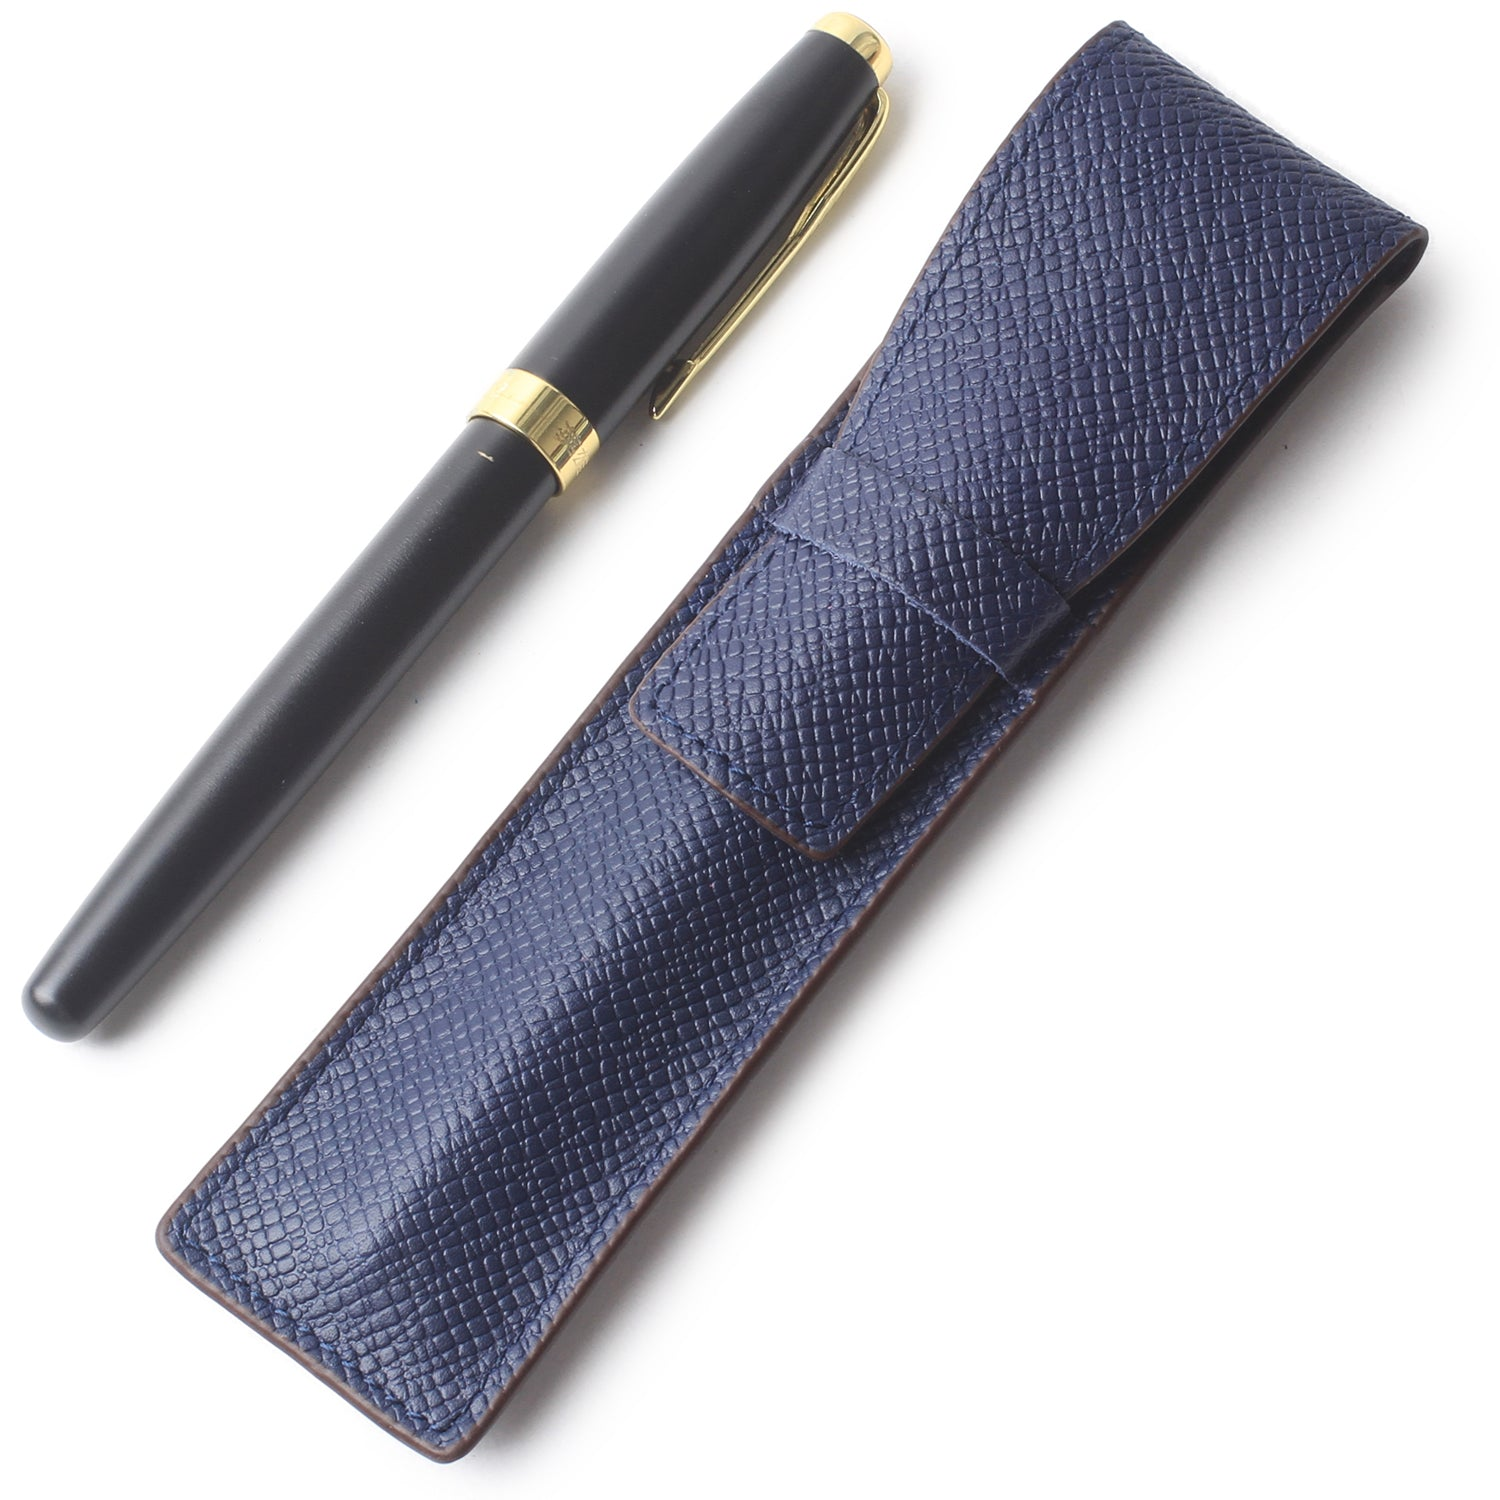 Borgasets Full Grain Leather Single Pen Case Holder Pencil Bag for Men Women Blue - Borgasets